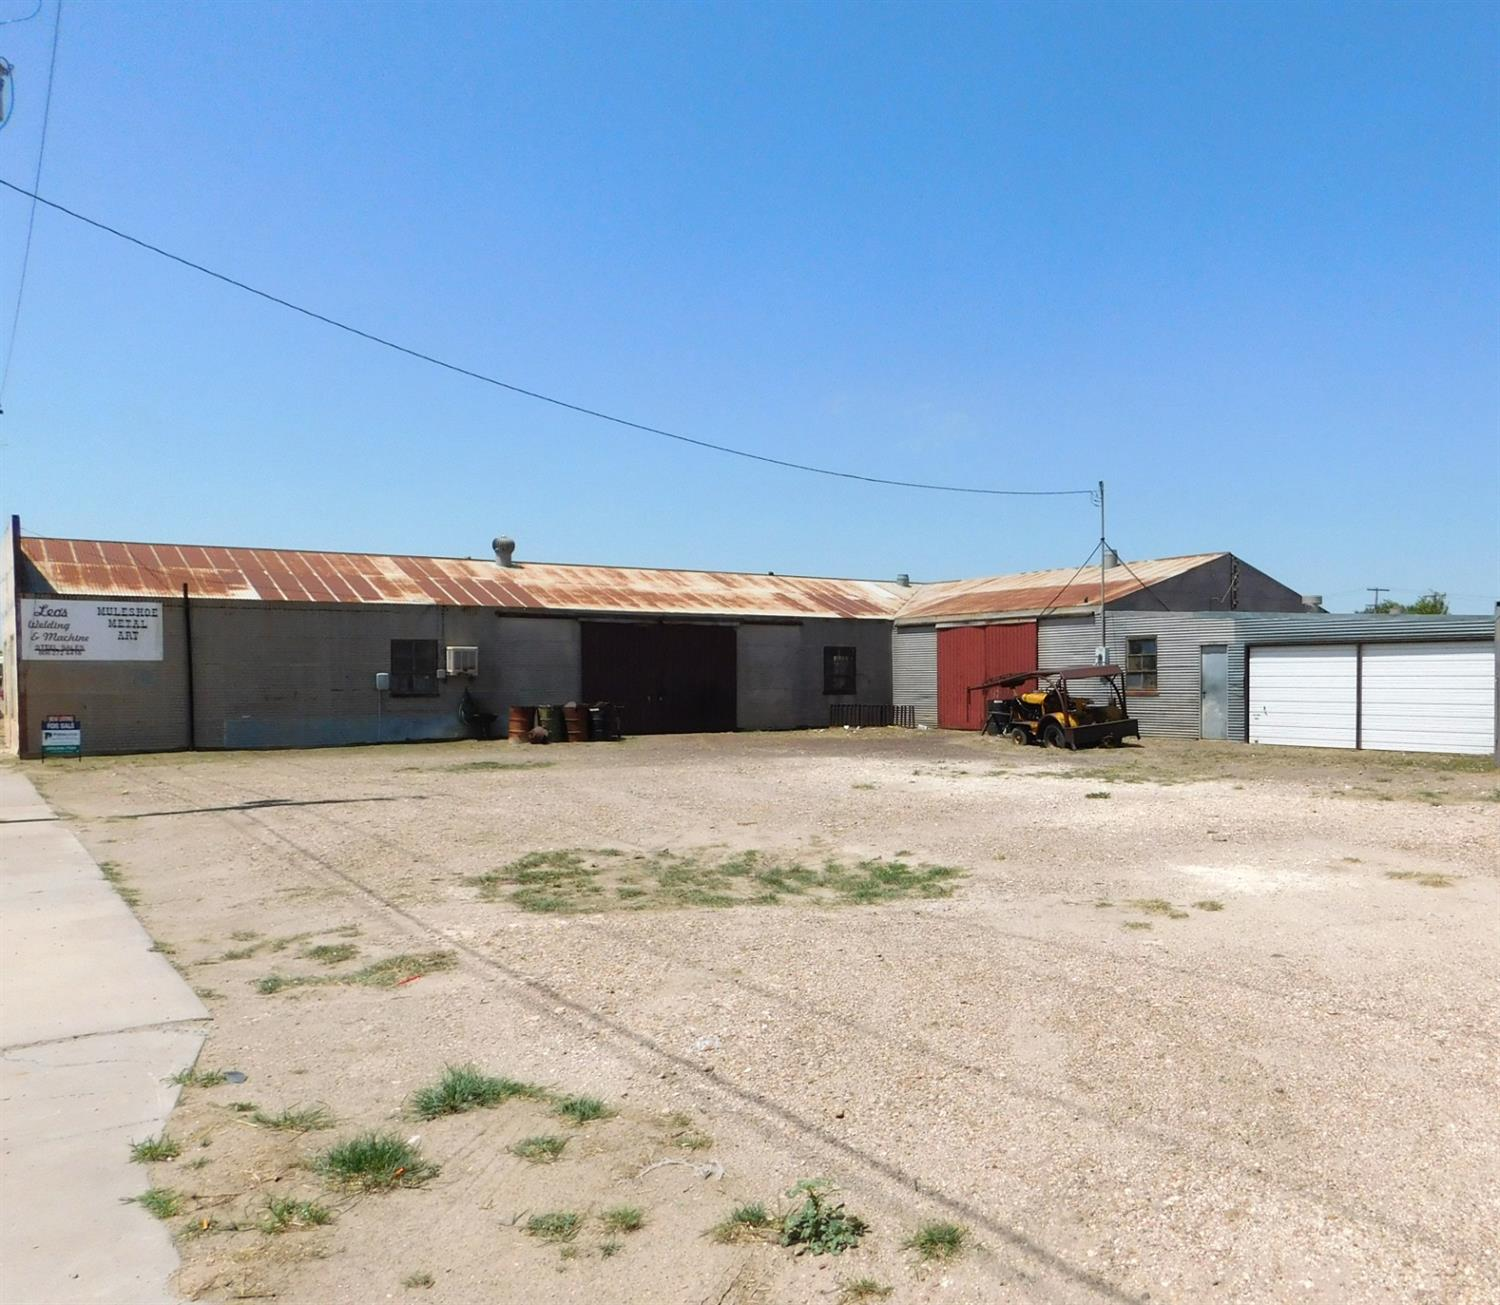 Long-standing Blacksmith/machine shop with shop, office, bathroom and warehouse. Main shop has 4320 sq. ft, warehouse is 600 sq. ft and additional shop space is 720 sq. ft. Property consists of 10 city lots with US HWY frontage, which is the main thoroughfare through Muleshoe. This PRIME location is a rare find in the area. This property is being sold turnkey, with all Blacksmith and welding equipment included in the the price. A detailed equipment list is available through the agent.